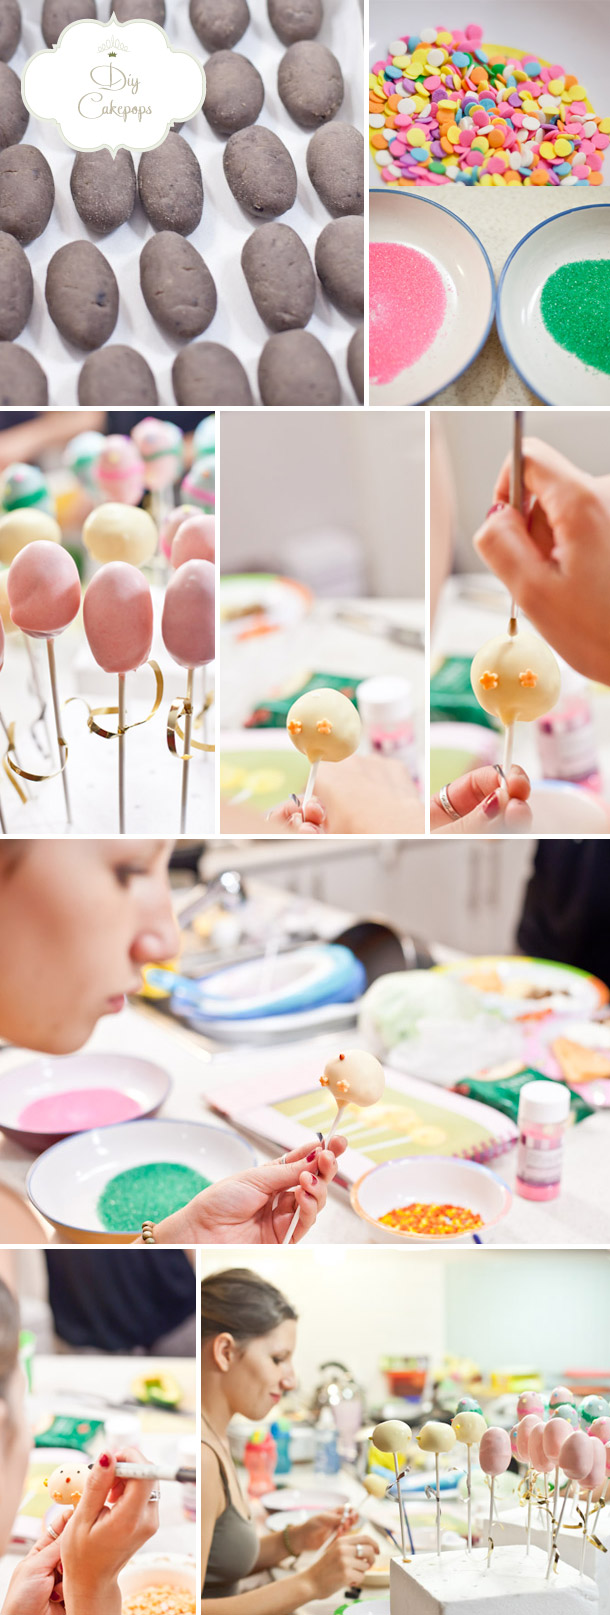 diy cake pops zu ostern hochzeitswahn sei inspiriert. Black Bedroom Furniture Sets. Home Design Ideas